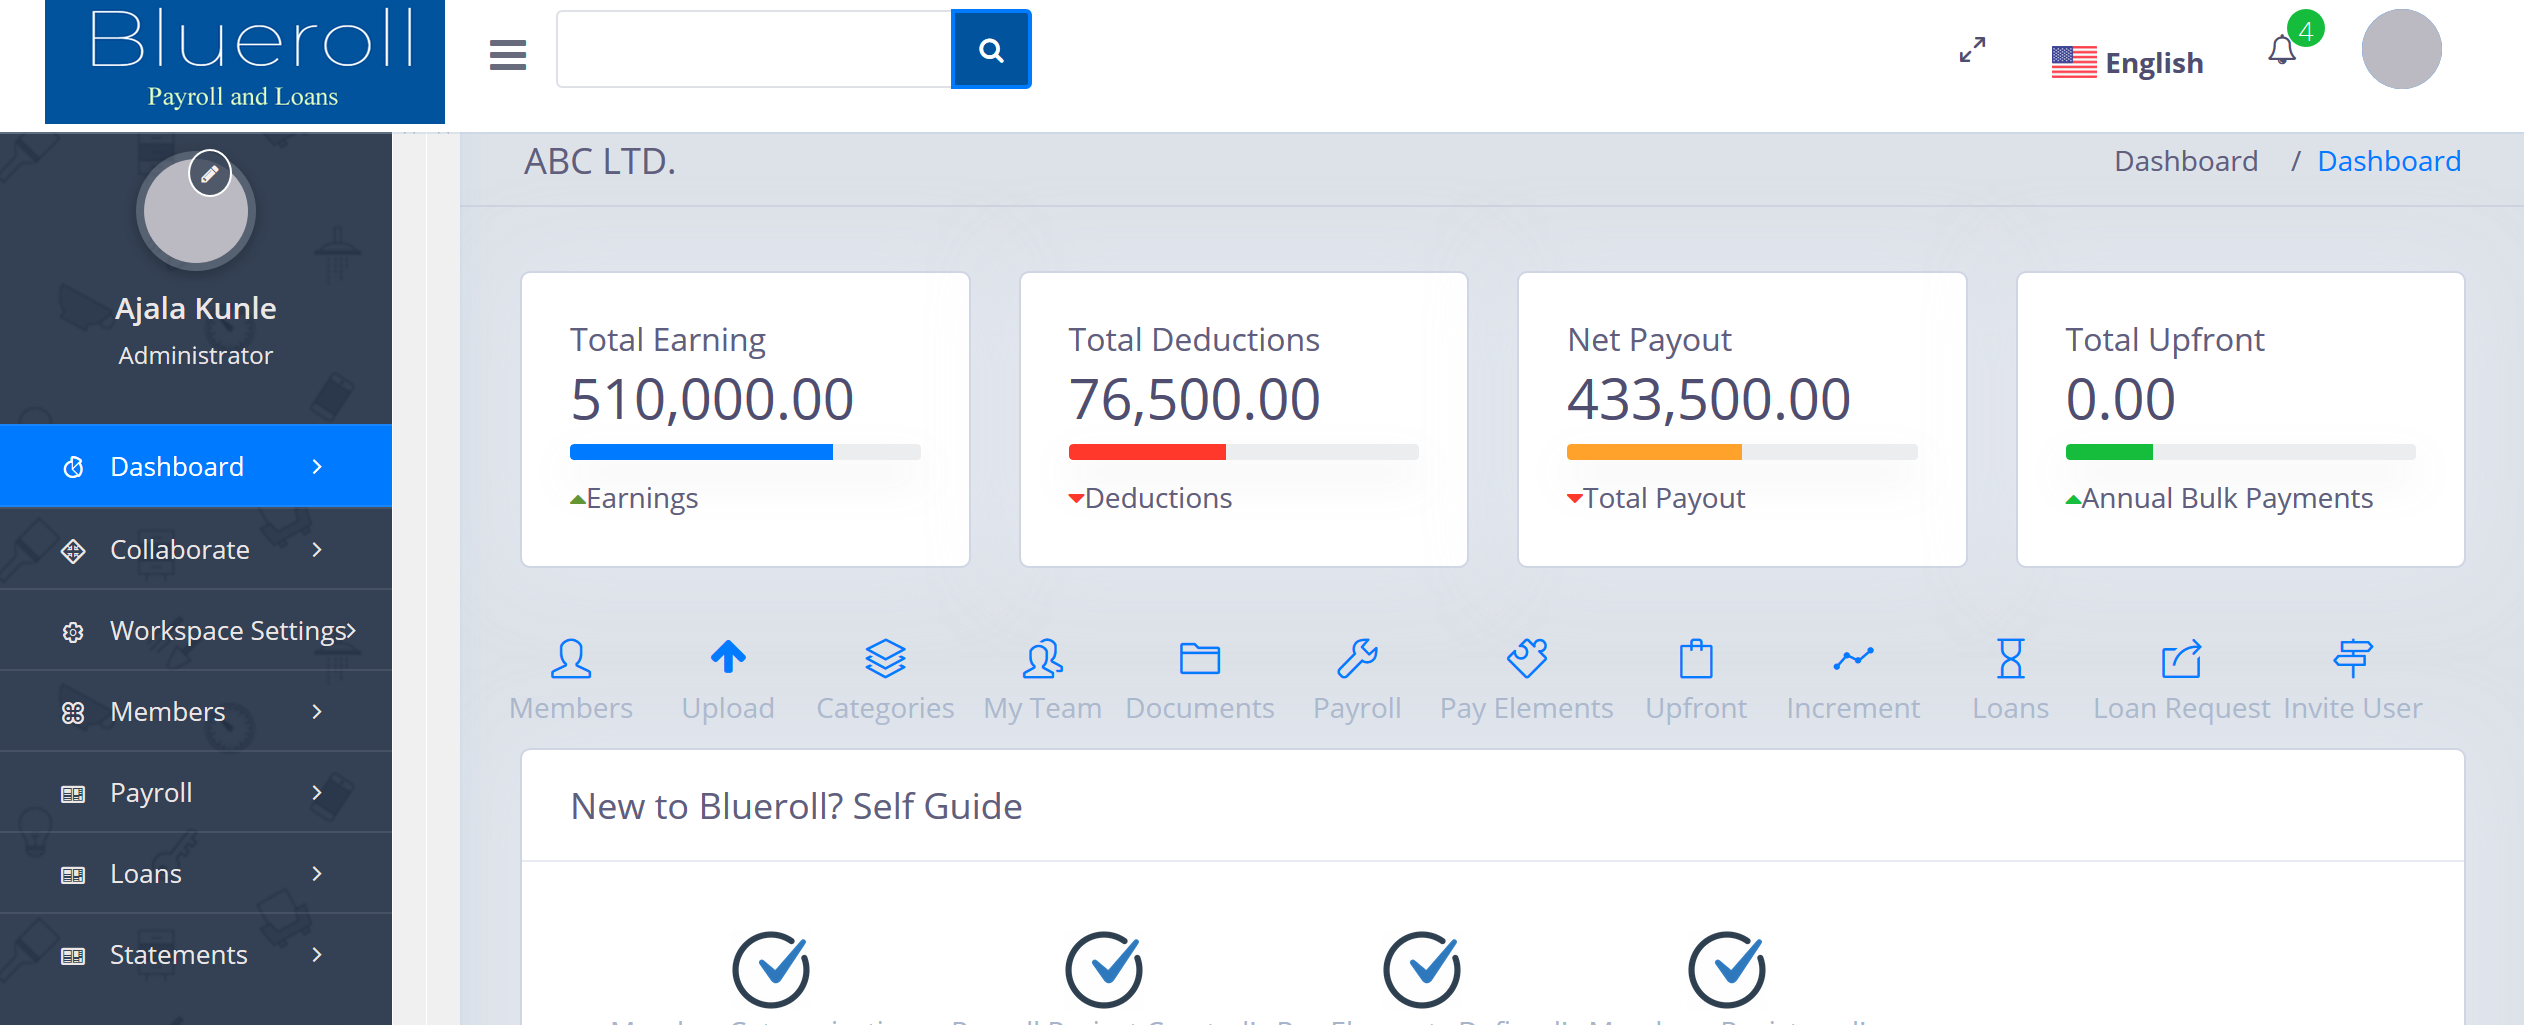 Blueroll Payroll and Loan Management System